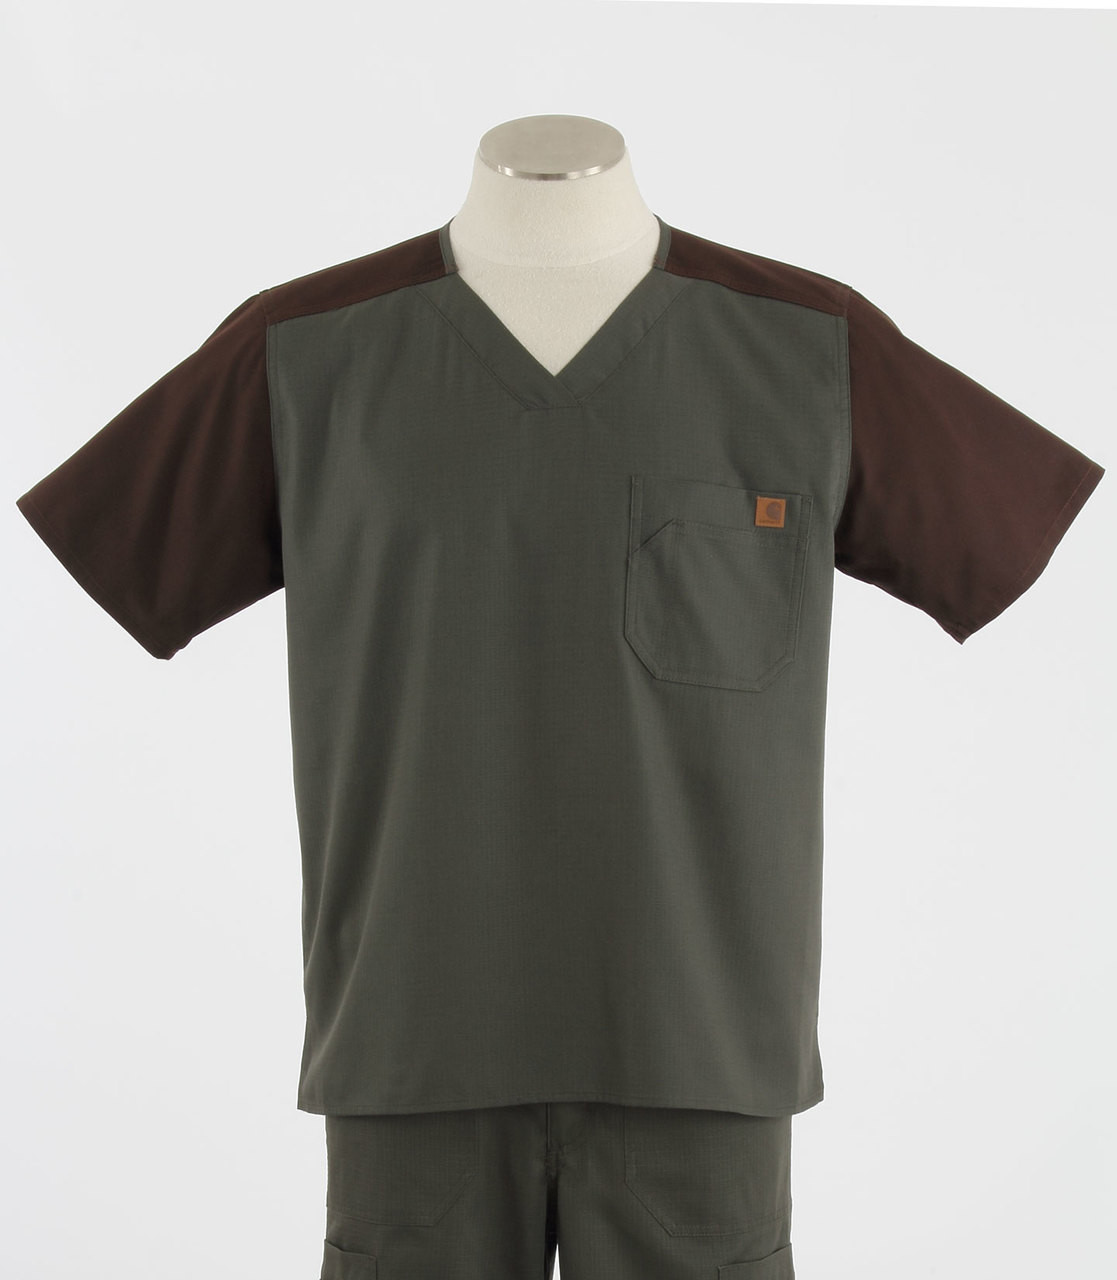 21a612b373c Carhartt Mens Scrub Top with Color Block Olive/Chocolate